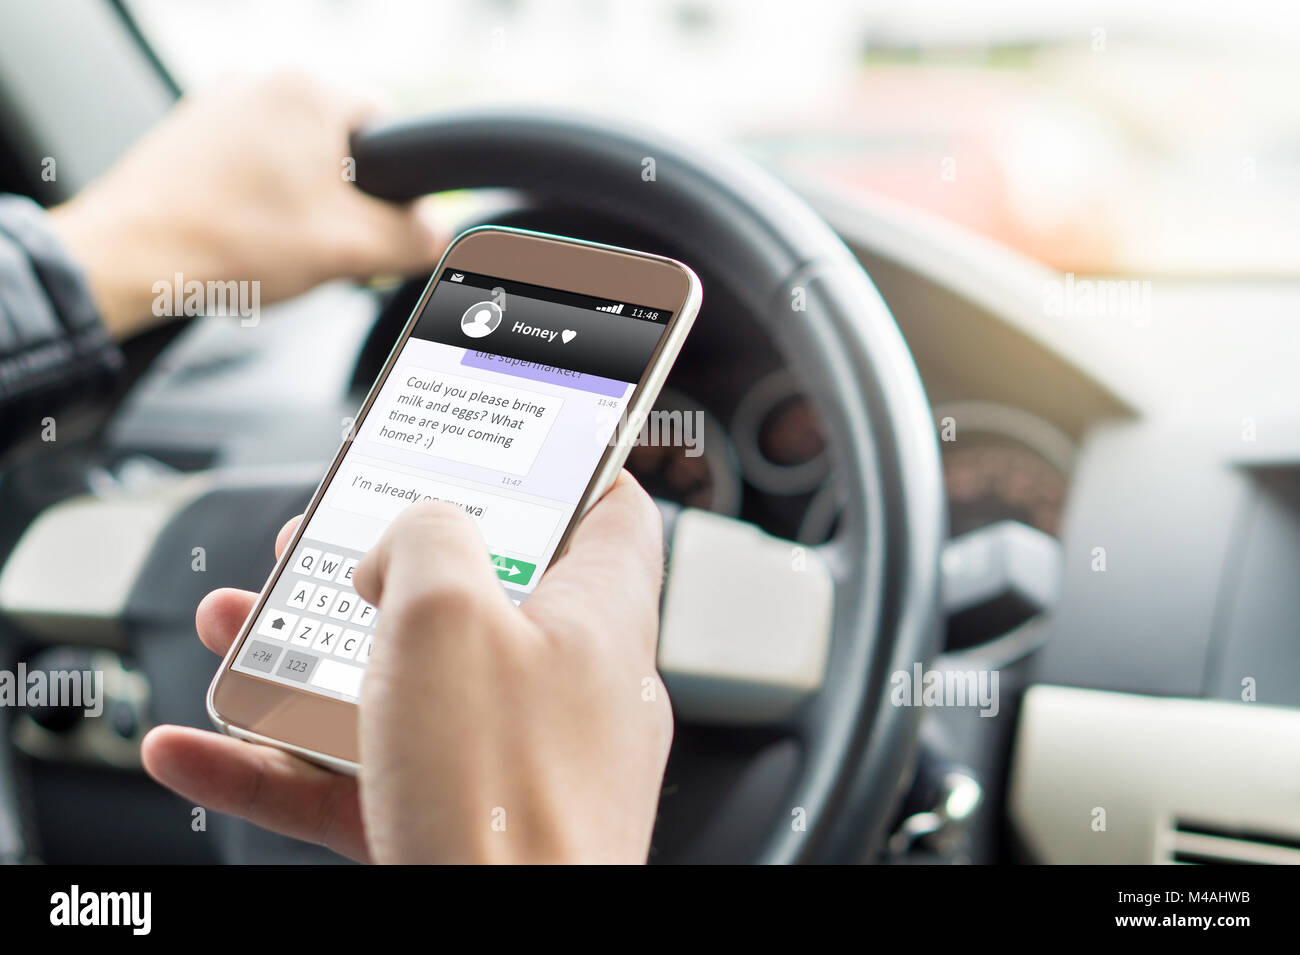 Texting while driving car. Irresponsible man sending sms and using smartphone. Writing and typing message with cellphone - Stock Image